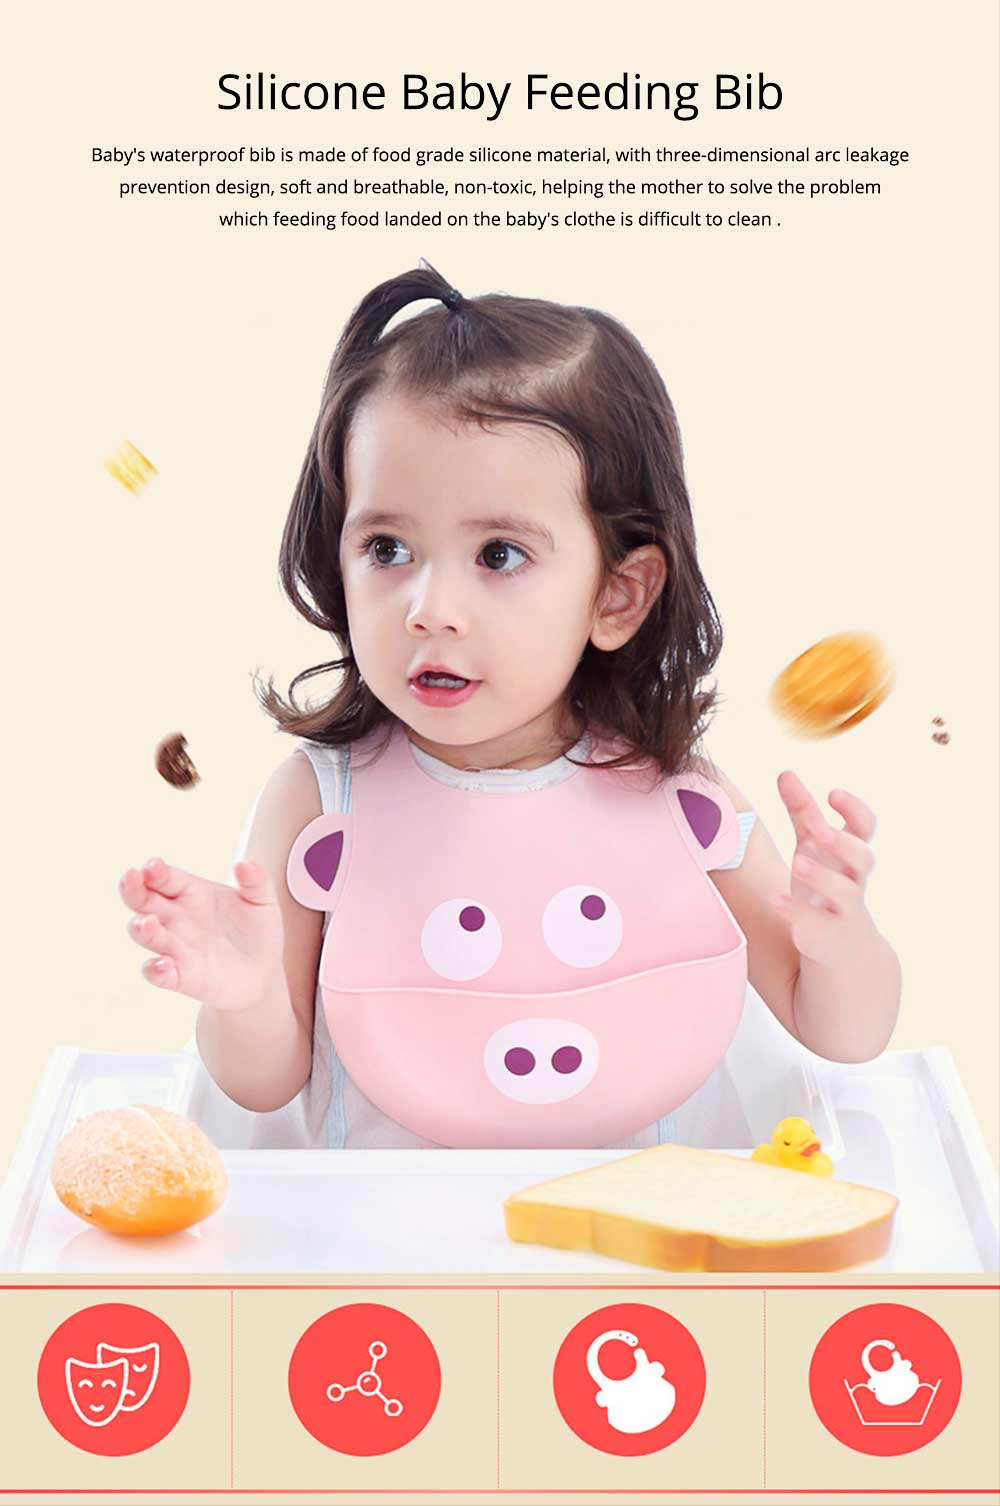 Food Grade Silicone Baby Feeding Bib, Waterproof Disposable Baby Rice Bib with 2-button Design 0